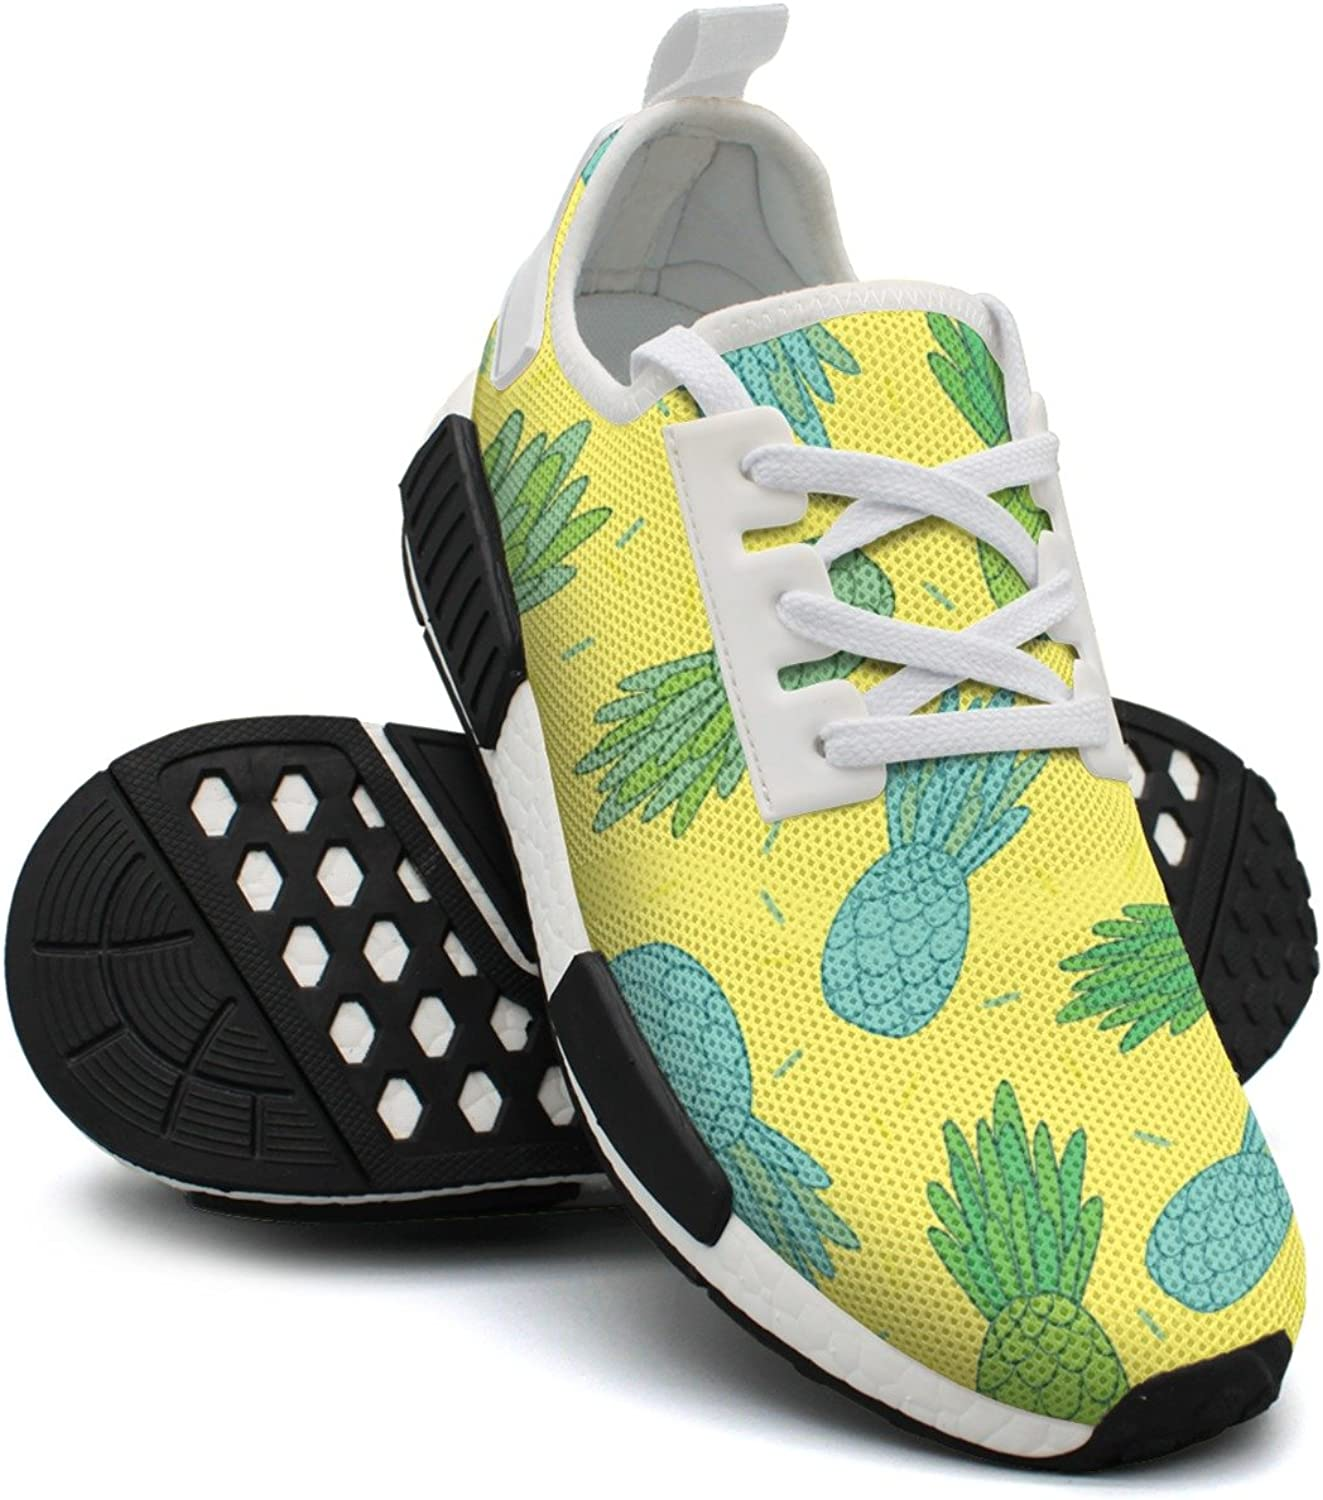 bluee Green Pineapples Doodle Best Running shoes Women Nmd Tennis shoes Gym